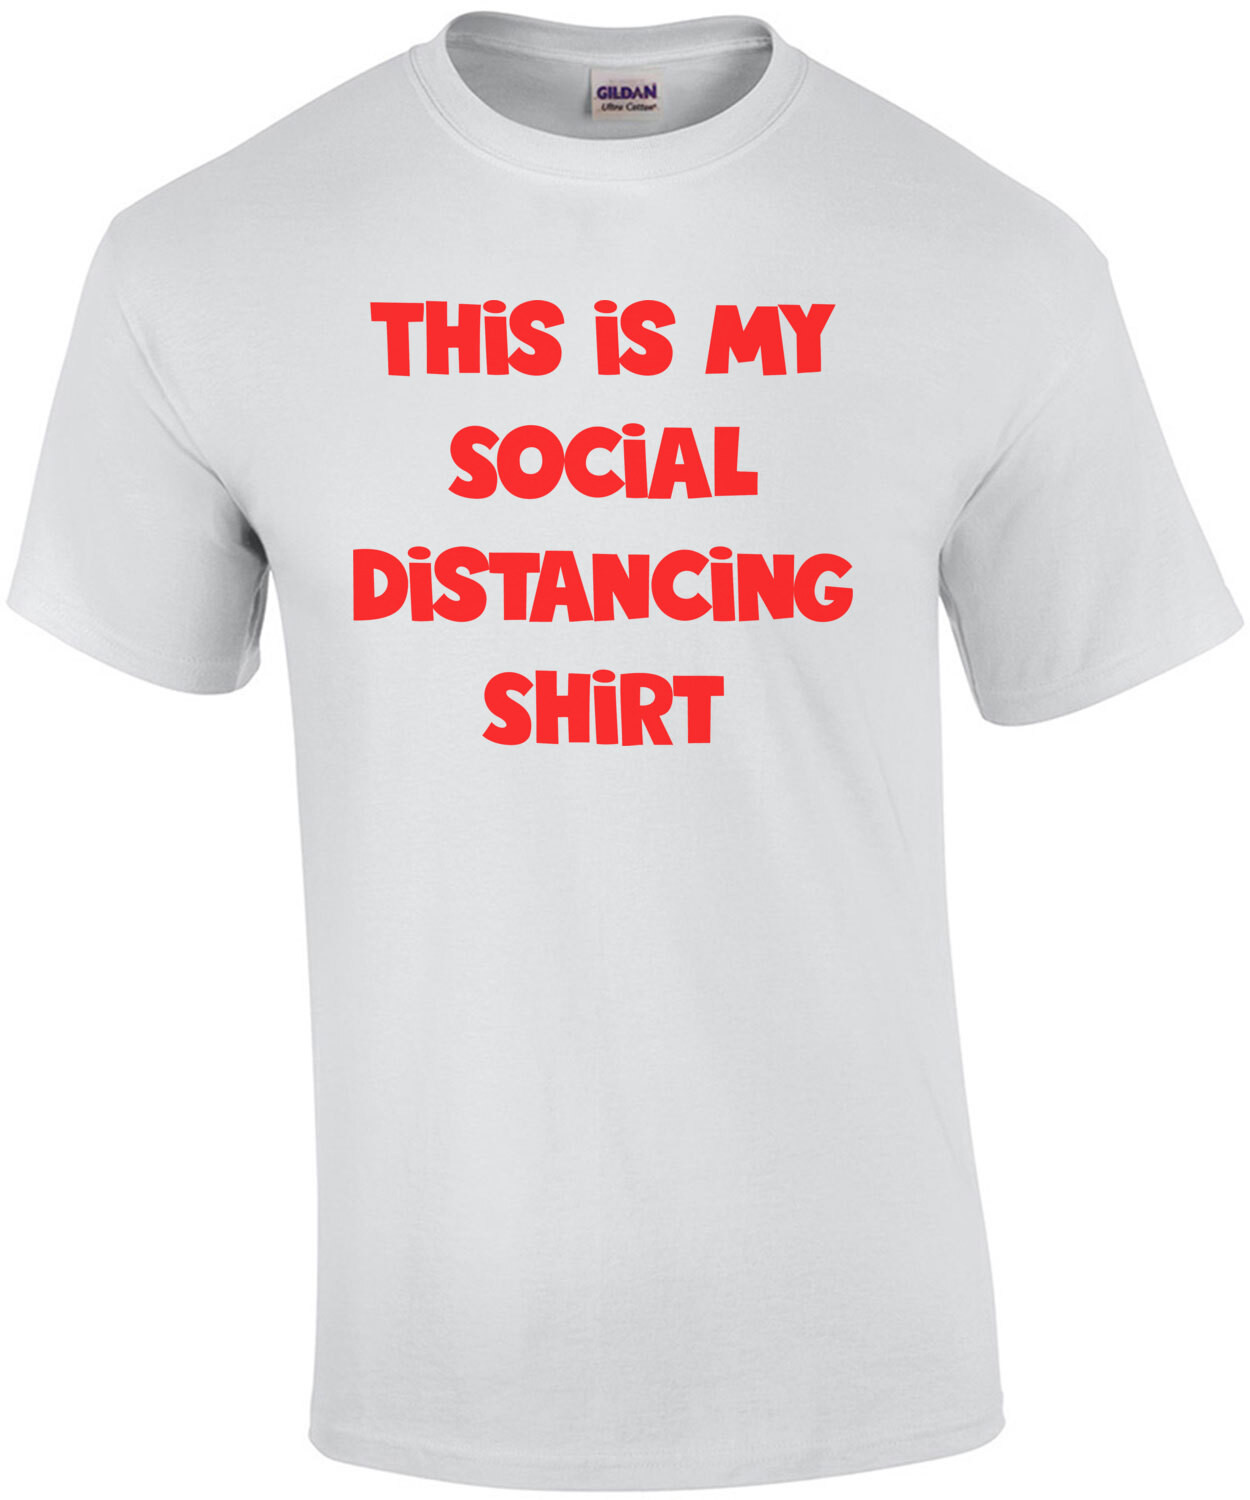 This is my Social Distancing Shirt  Funny Coronavirus Tee